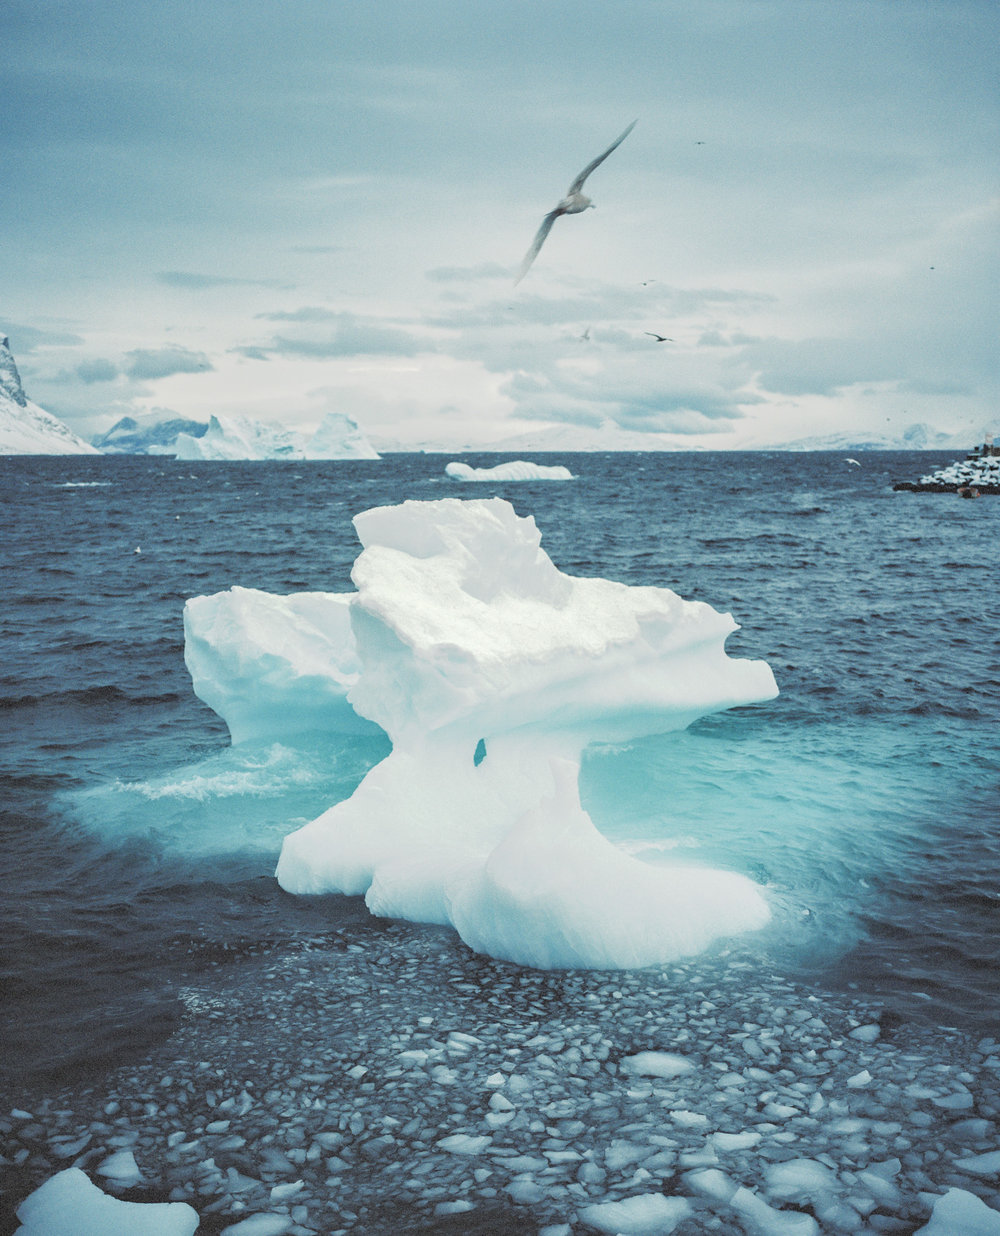 The arctic continuous to melt with each passing minute through global warming. The average temperature in the arctic has increased about almost 4 degrees since the beginning of the 20th century.